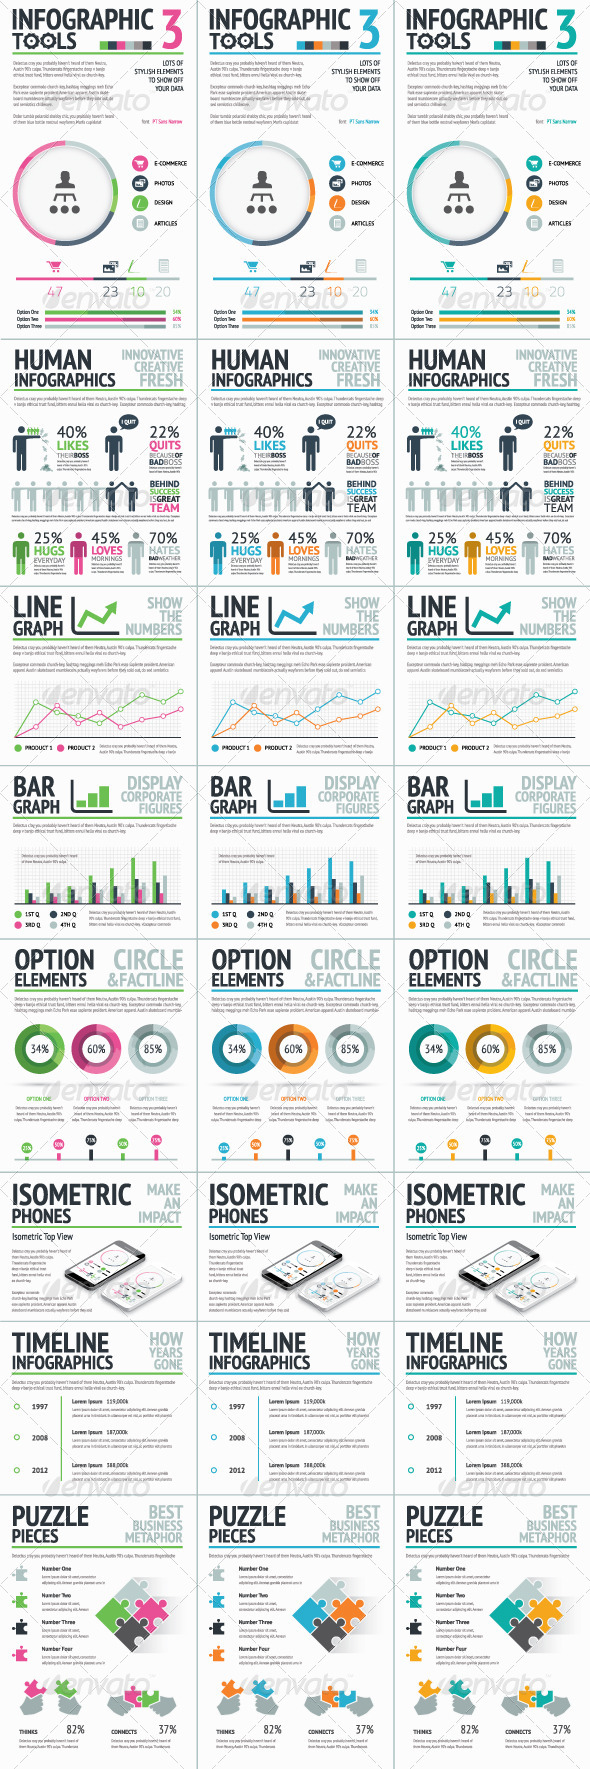 GraphicRiver Infographic Tools Set 3 7255322